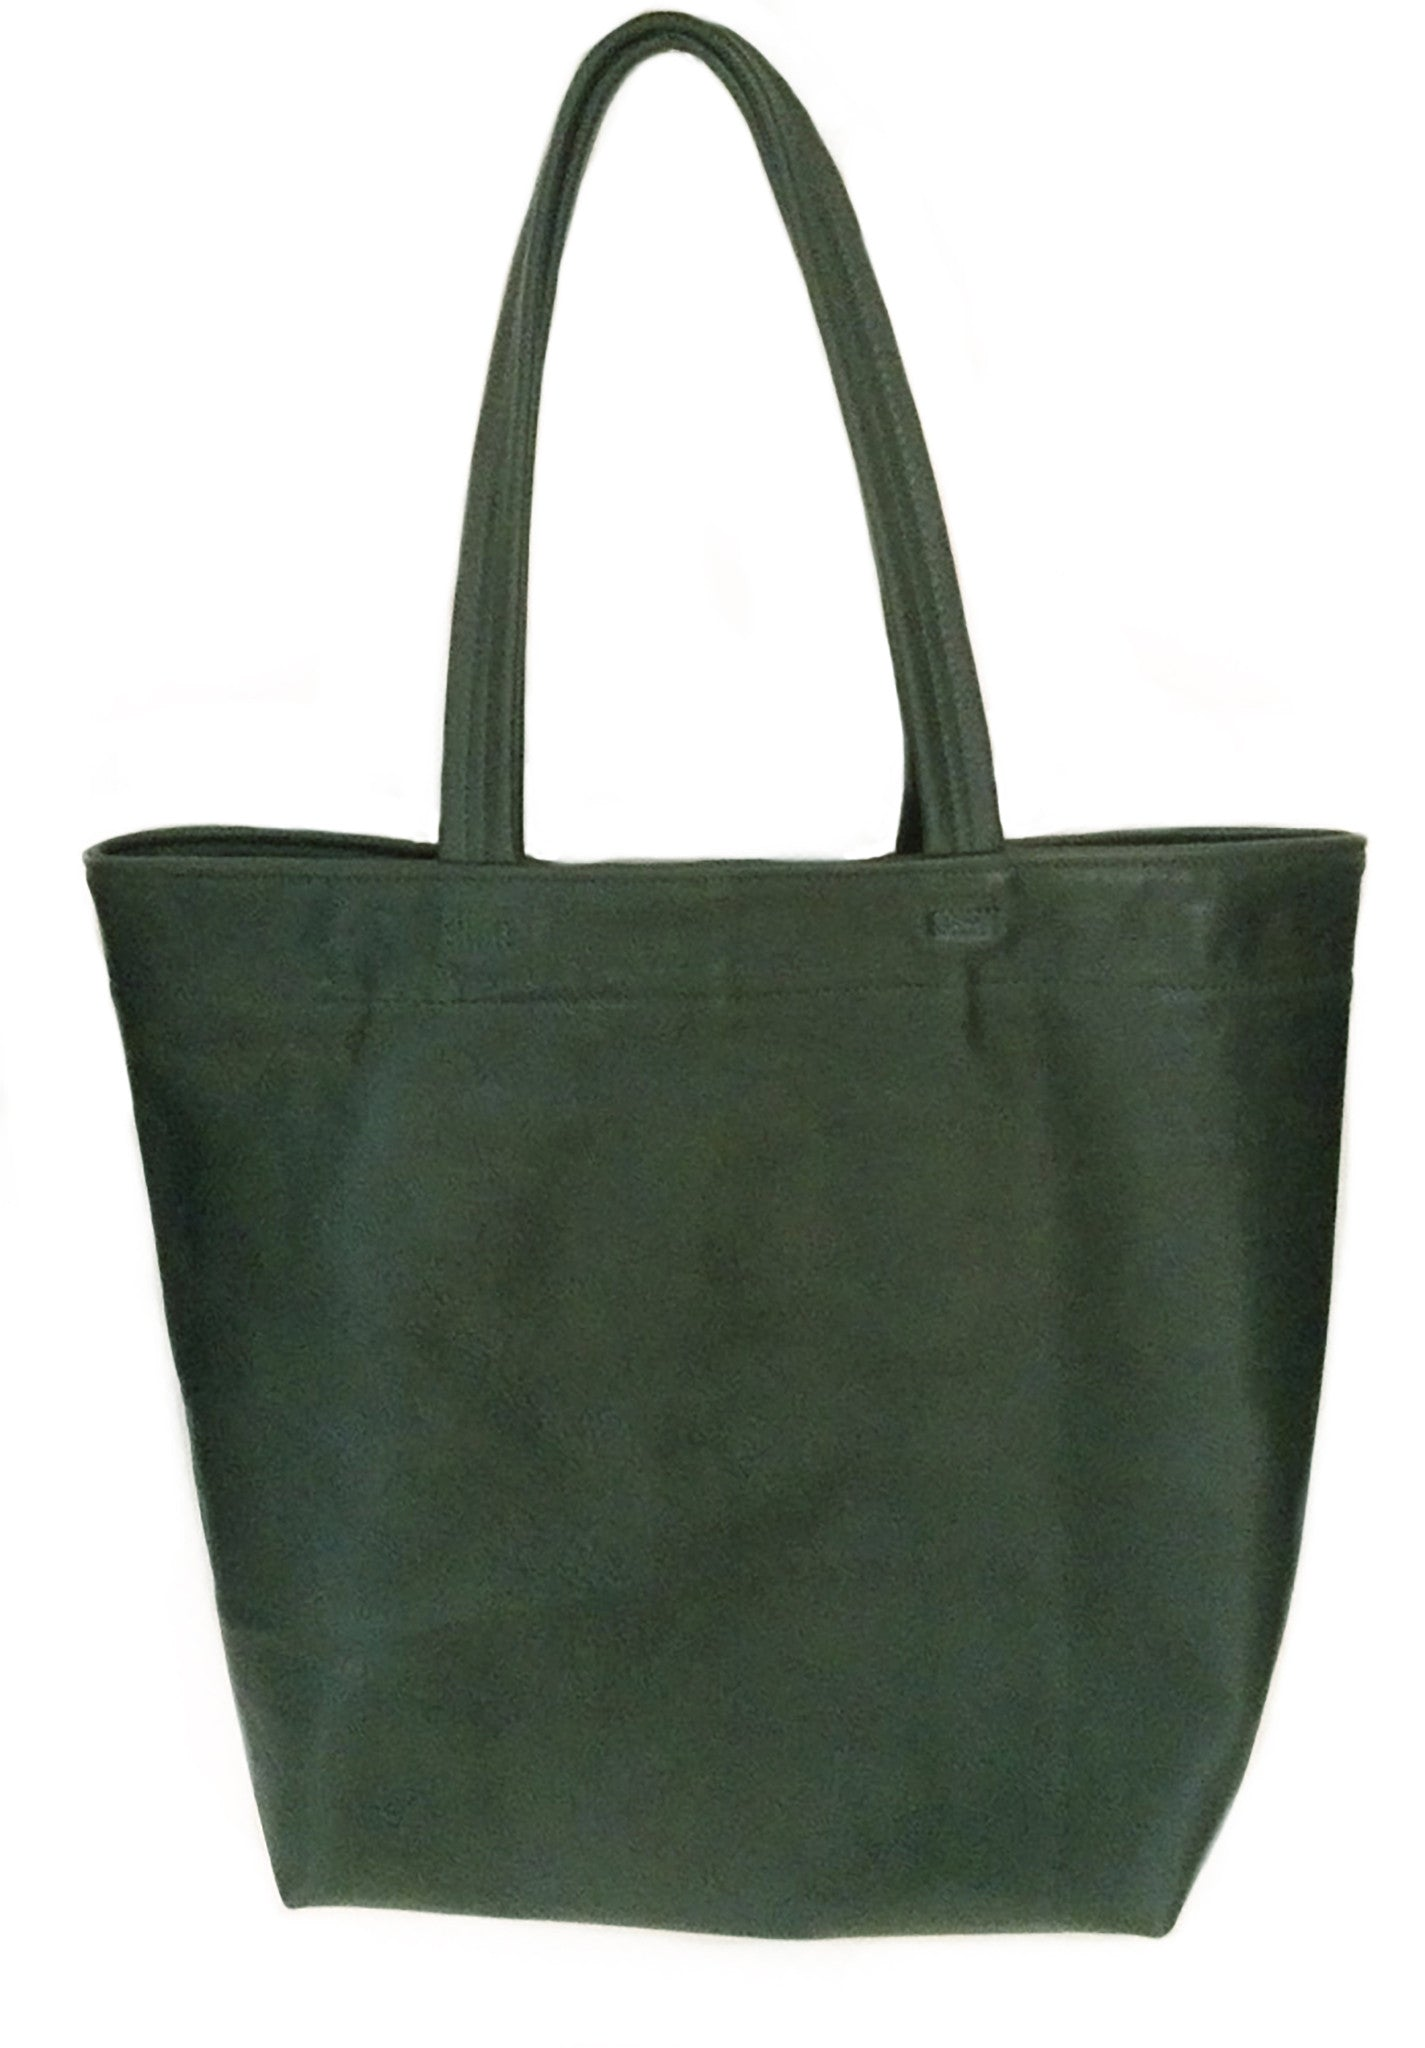 Billy Kid Dark Green Leather Tote Wendy Nichol Handbag Purse Bag Designer Handmade in NYC New York City strong Durable shoulder strap Interior pocket High Quality soft Leather